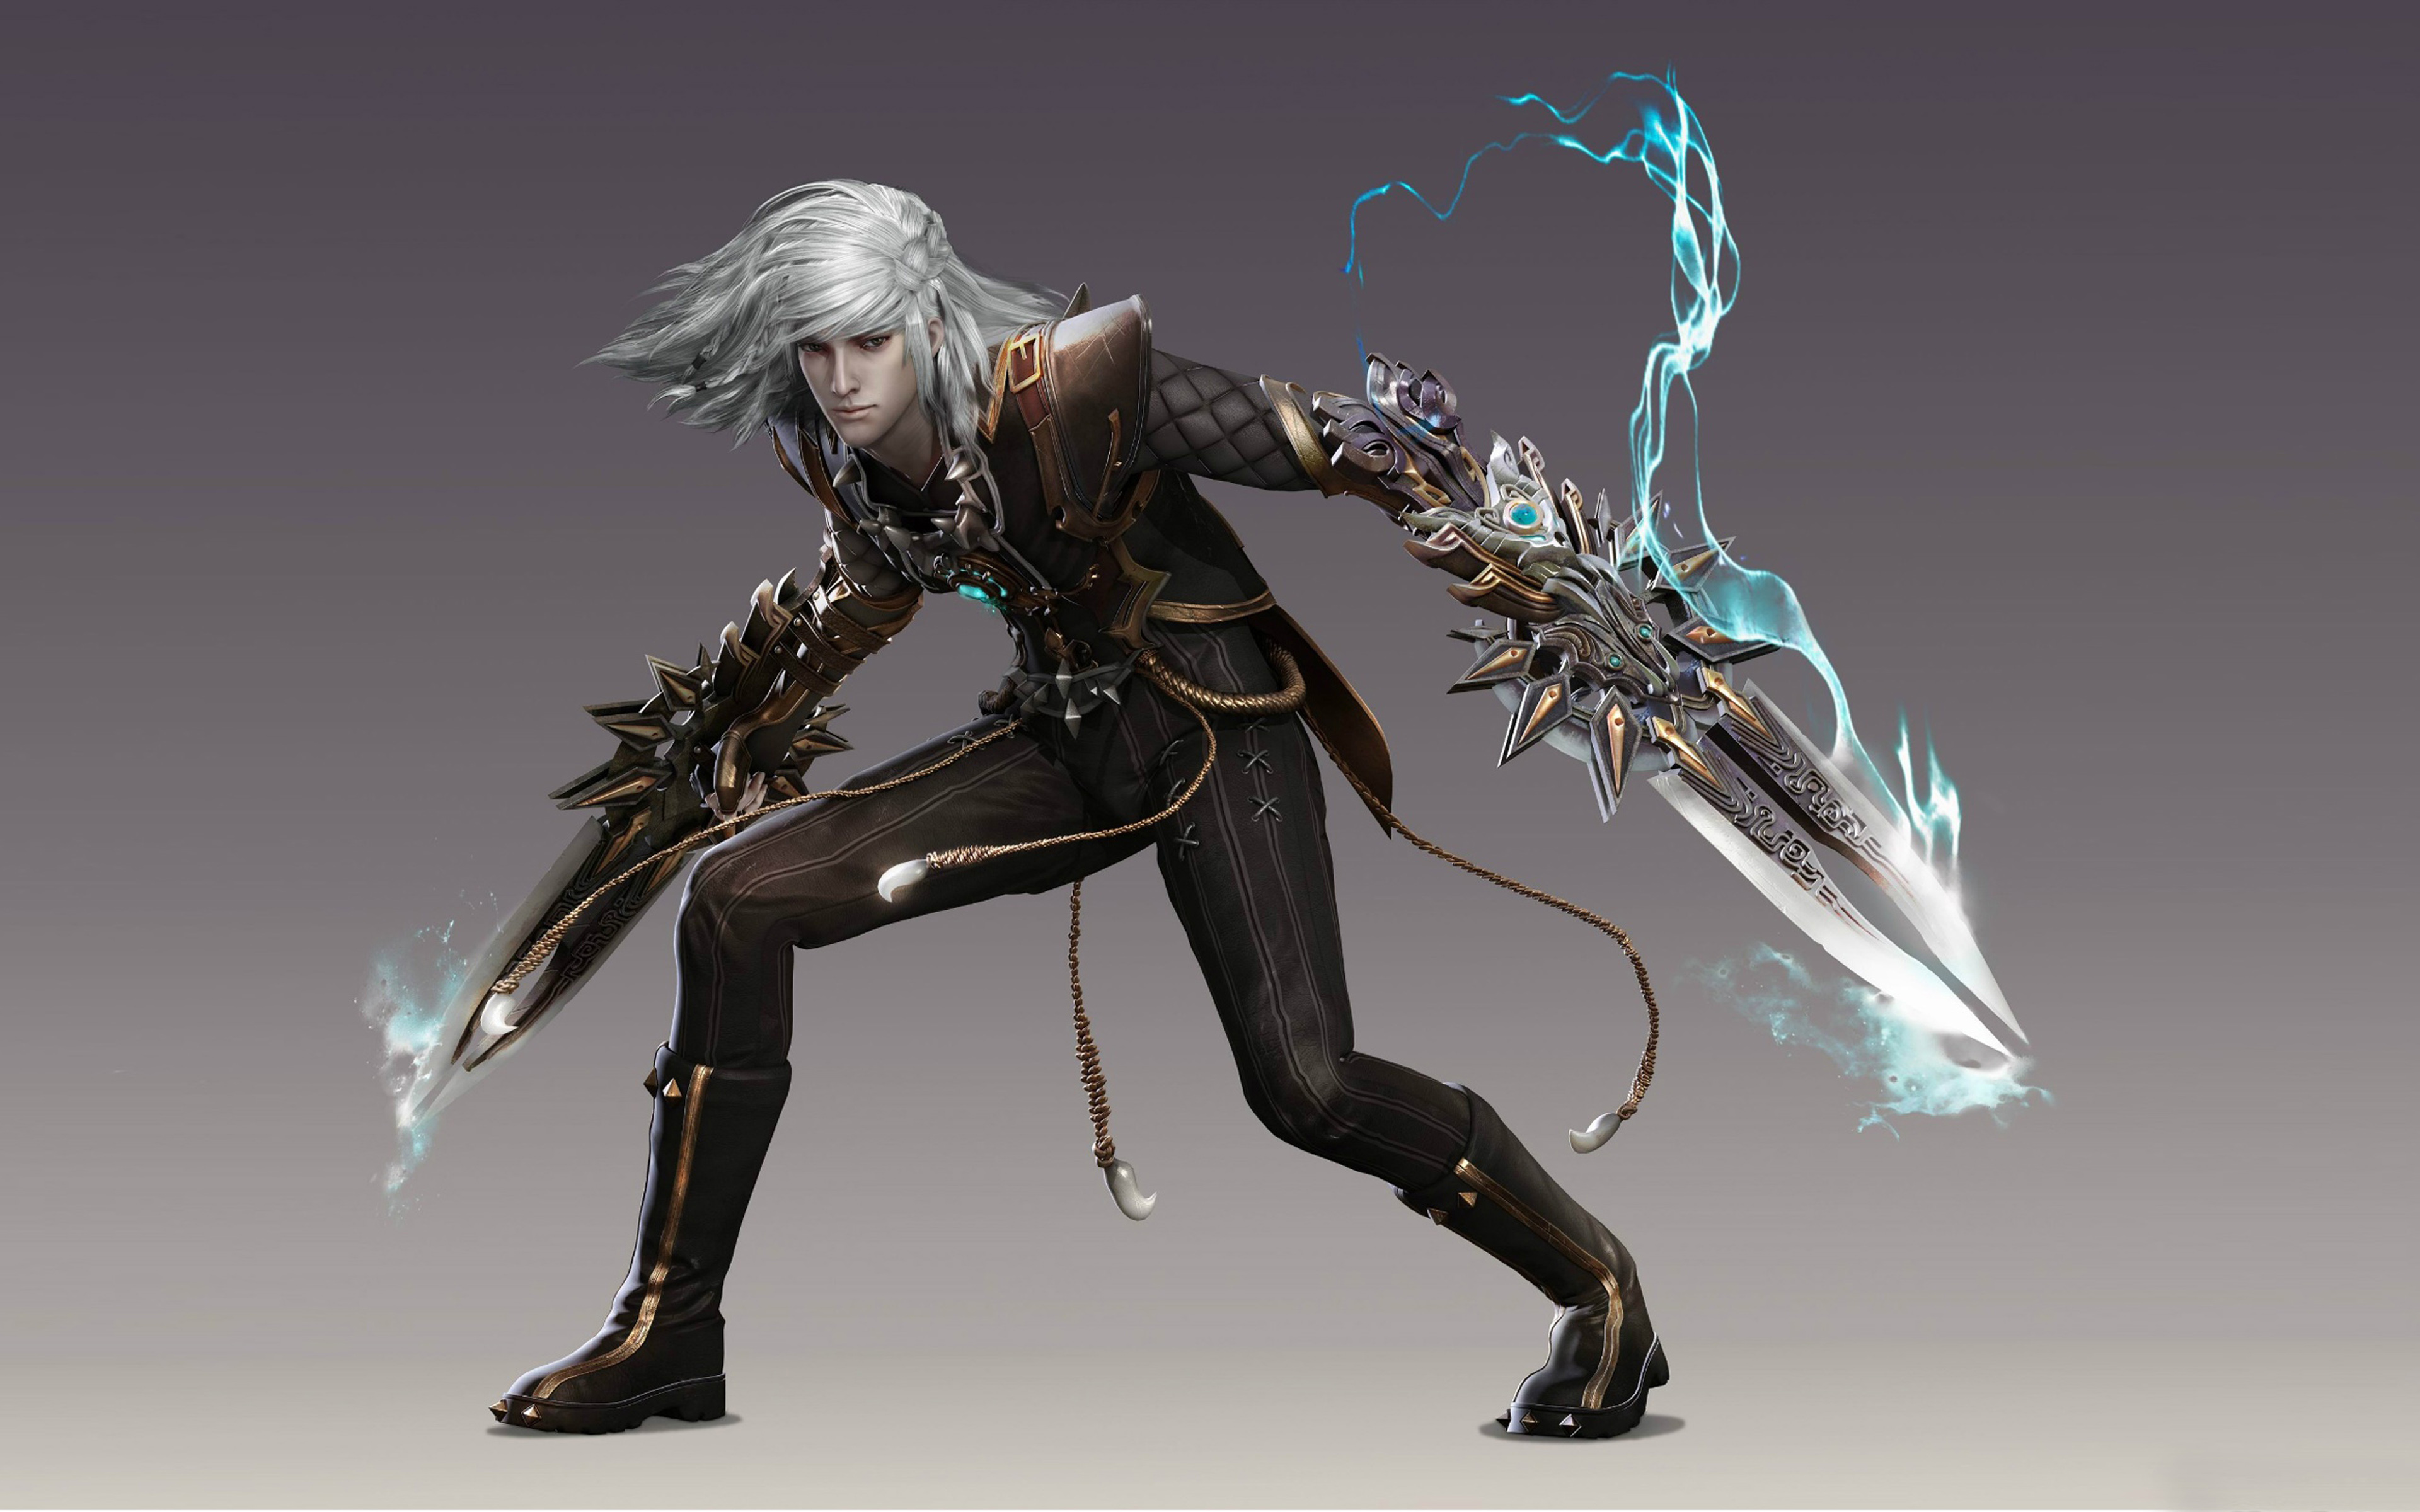 Free Iphone 3d Wallpapers Fighter Boy Blue Haired Warrior With Swords Fantasy Art